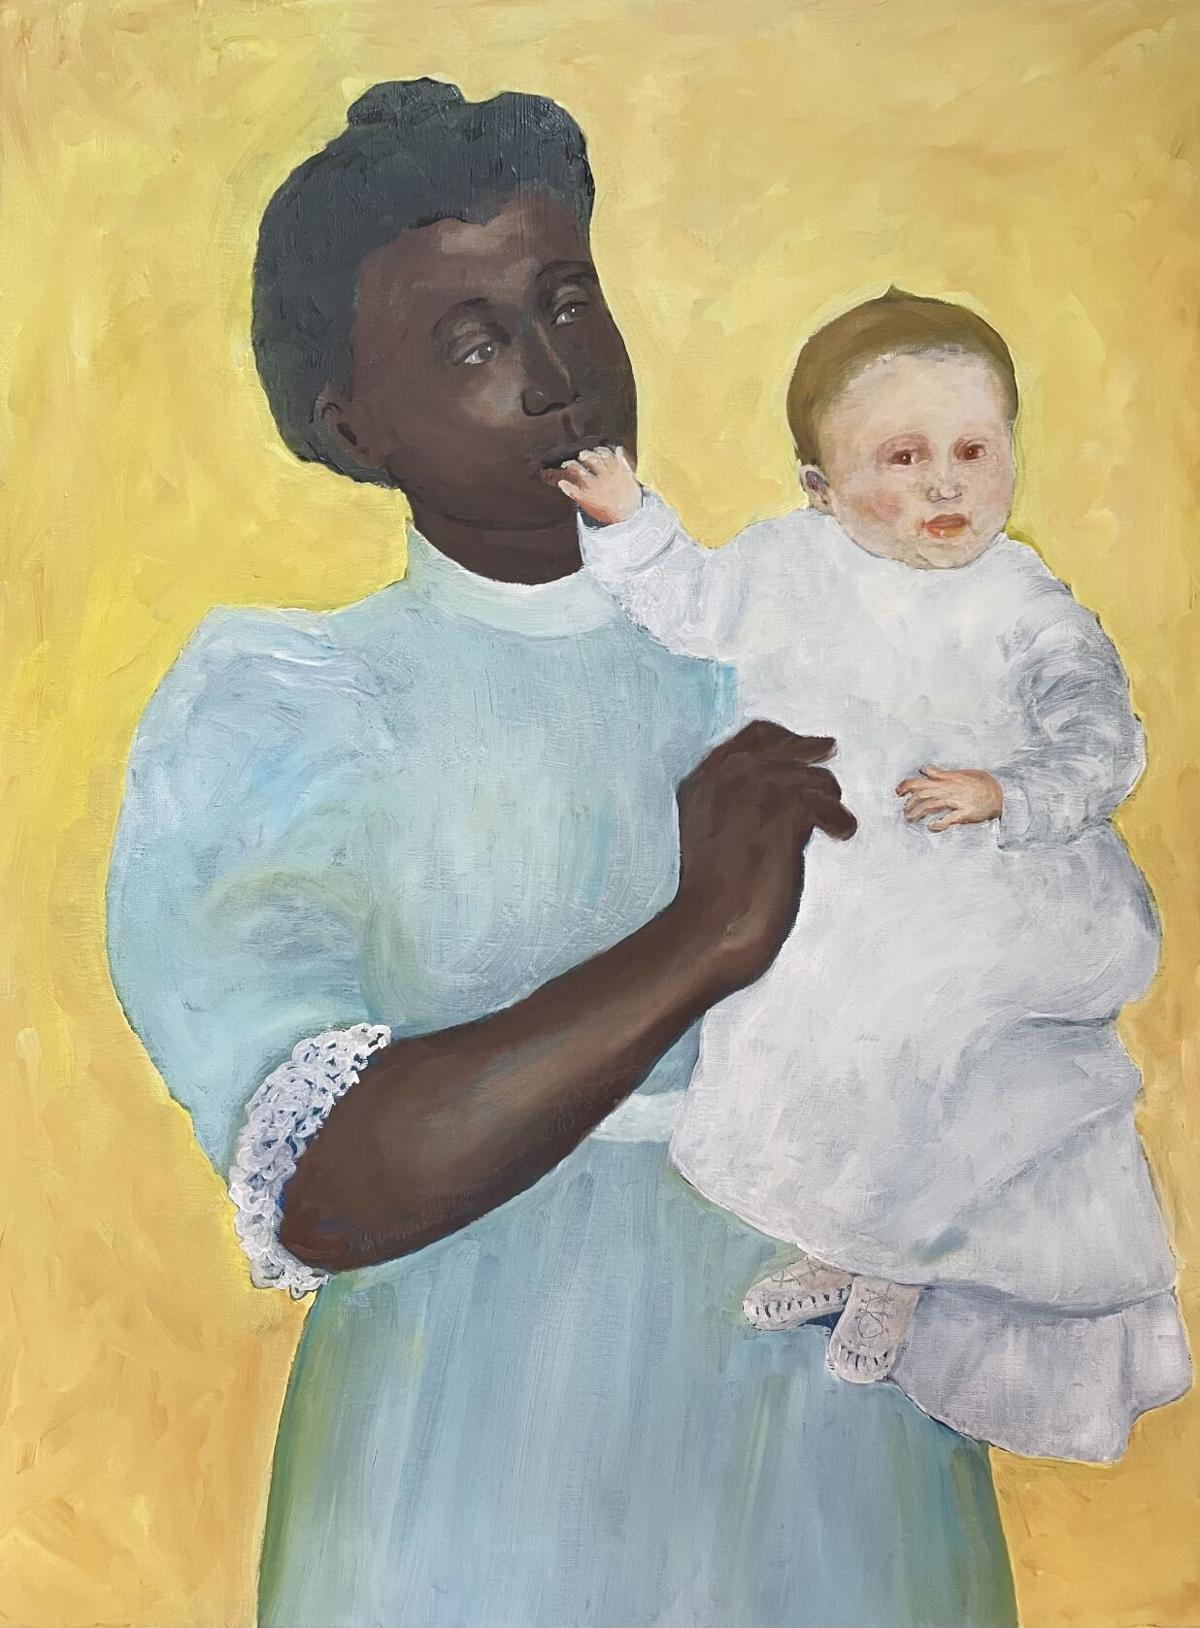 2.Connie Bostic, Untitled, 2021, Oil on canvas 24x 18.jpeg